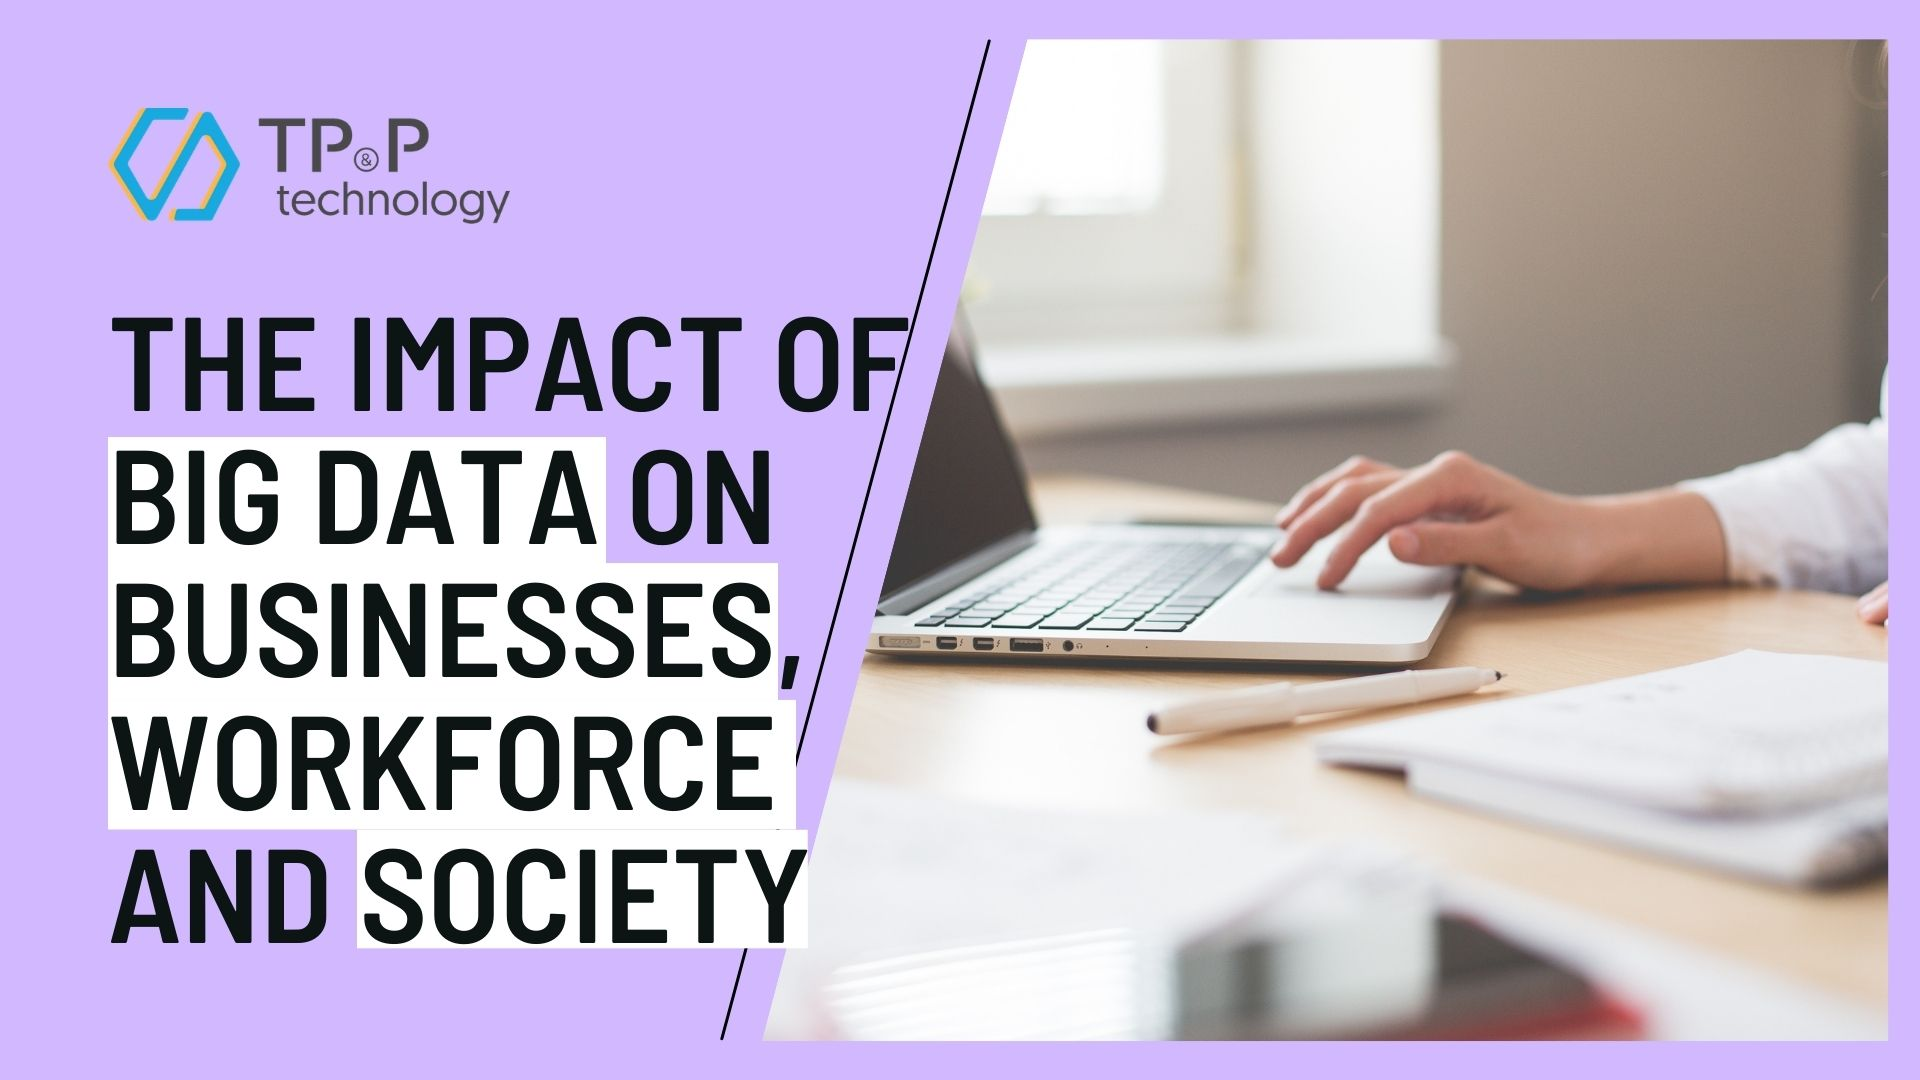 The Impact Of Big Data On Businesses, Workforce and Society